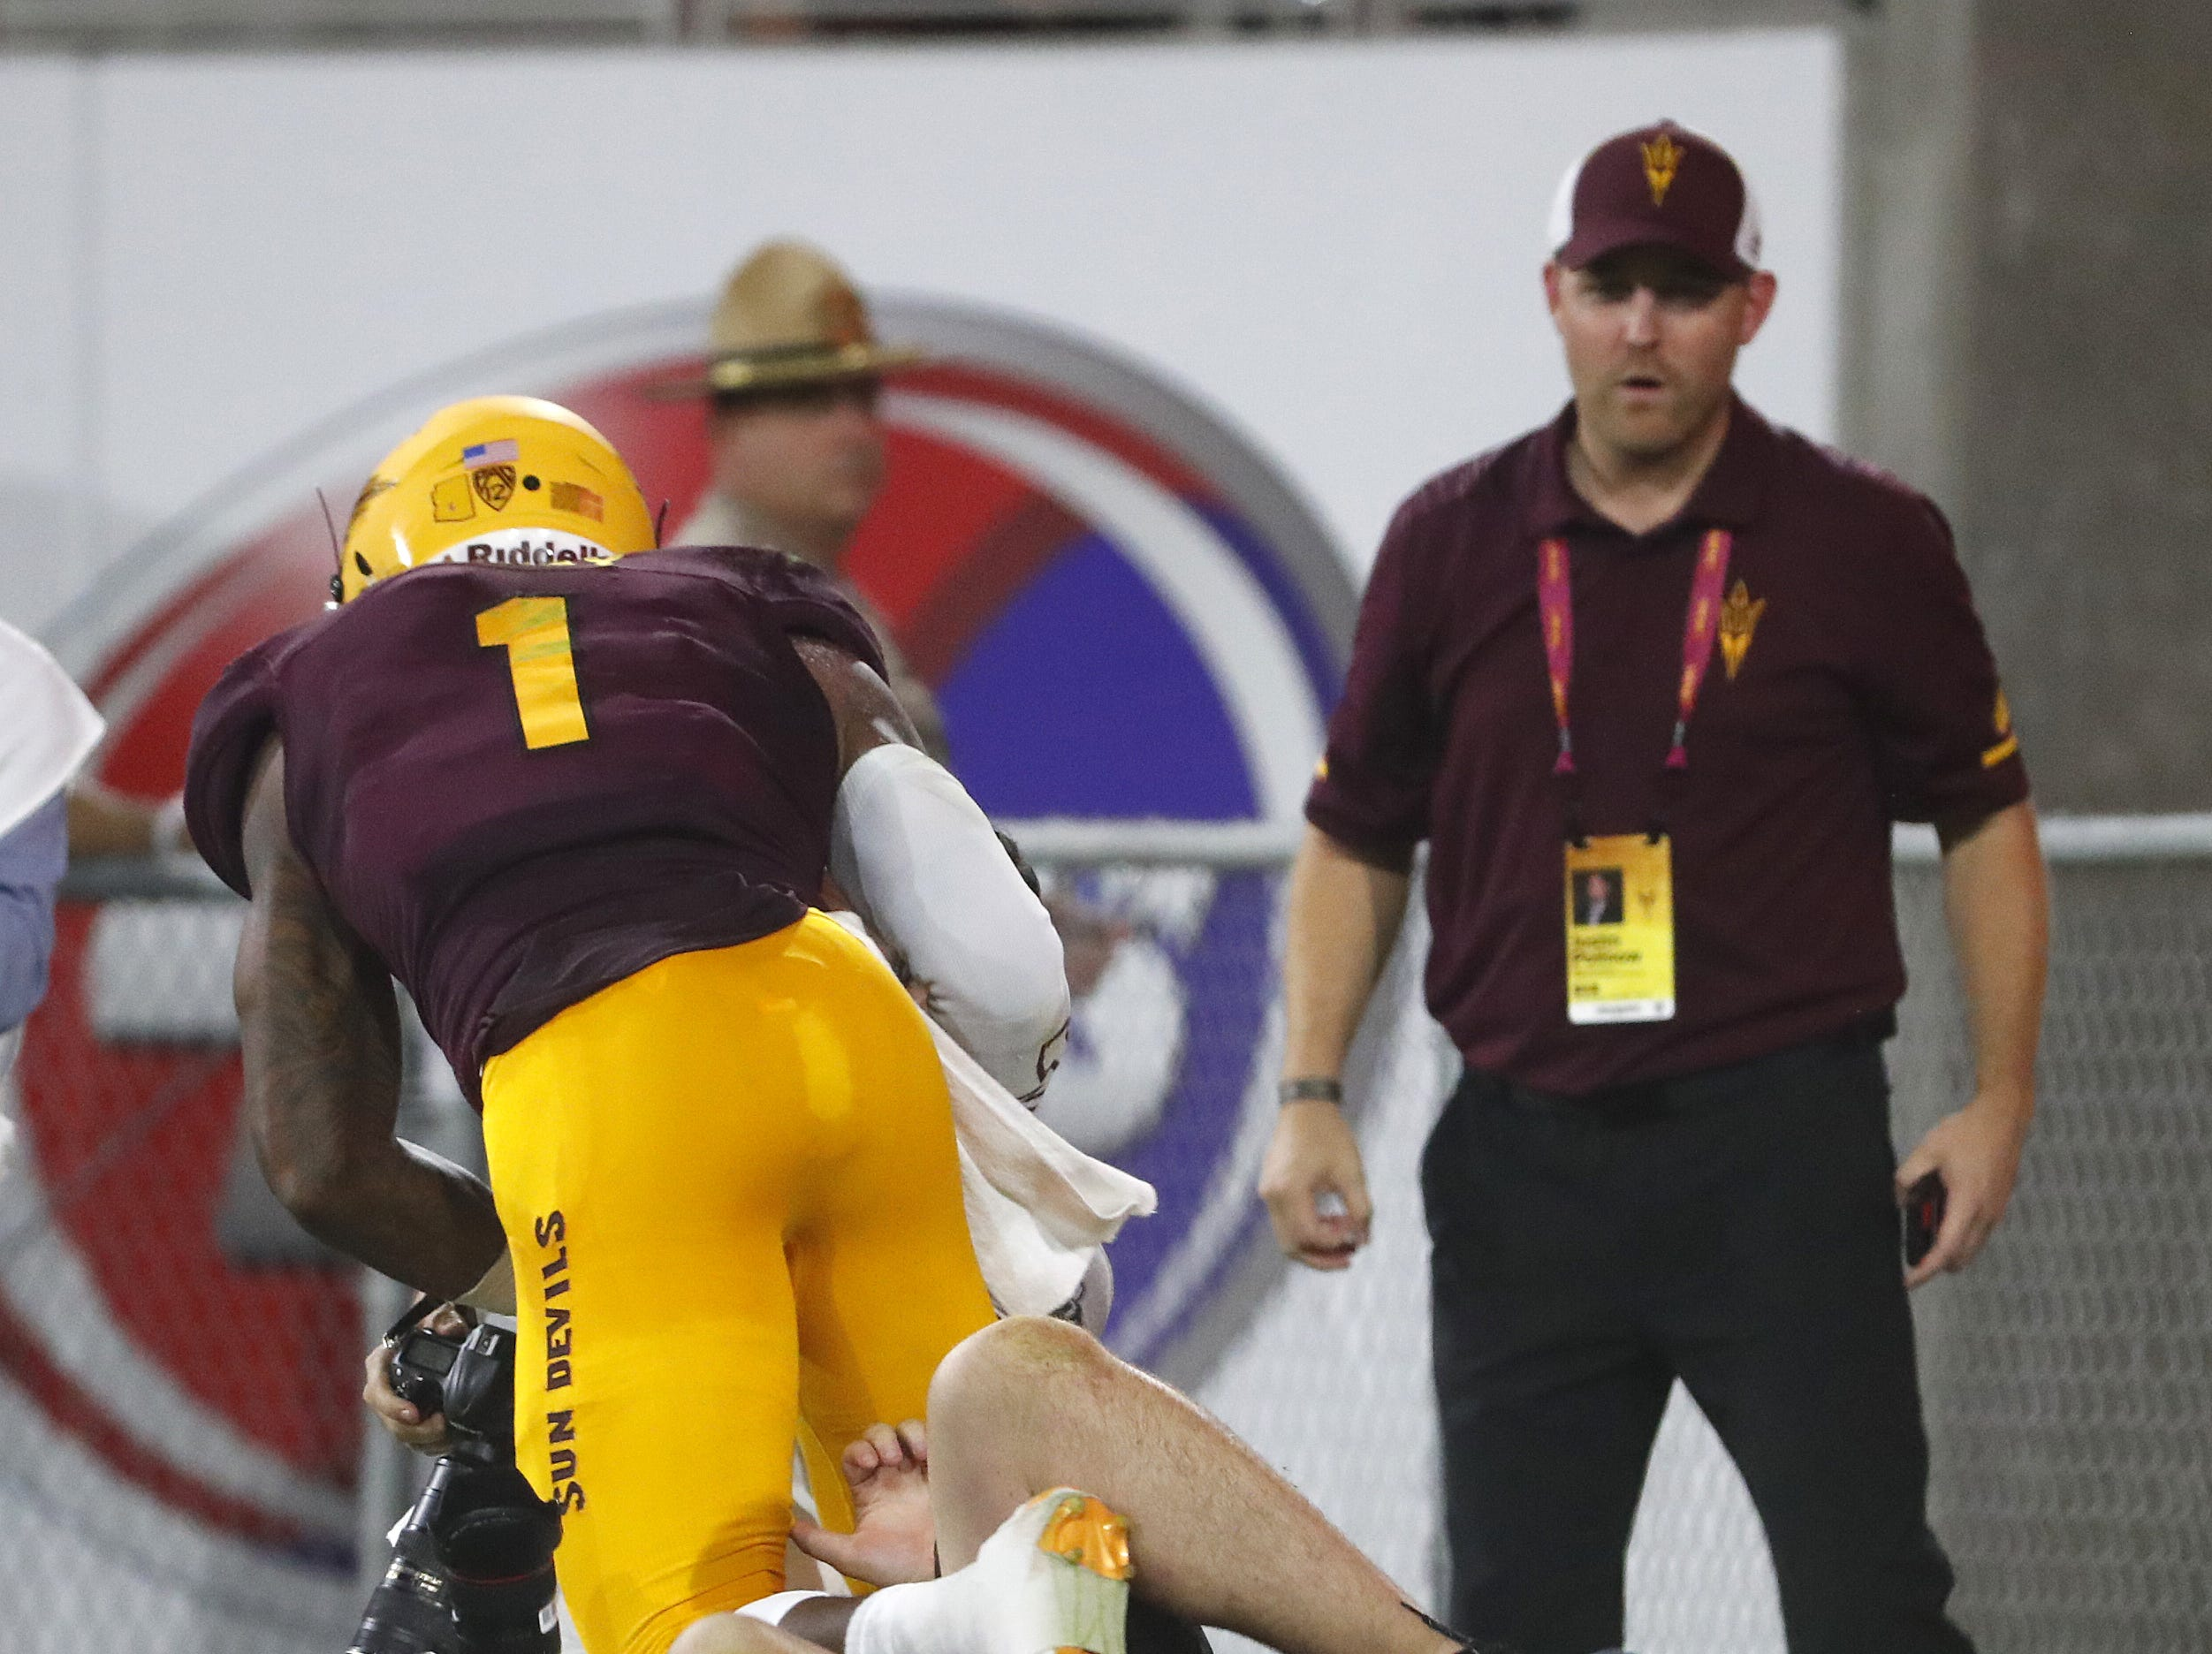 ASU's Arizona State Sun Devils wide receiver N'Keal Harry (1) falls over a photographer while celebrating a 58-yard touchdown reception against UTSA Roadrunners in the first quarter at Sun Devil Stadium in Tempe, Ariz. on Sept. 1, 2018.